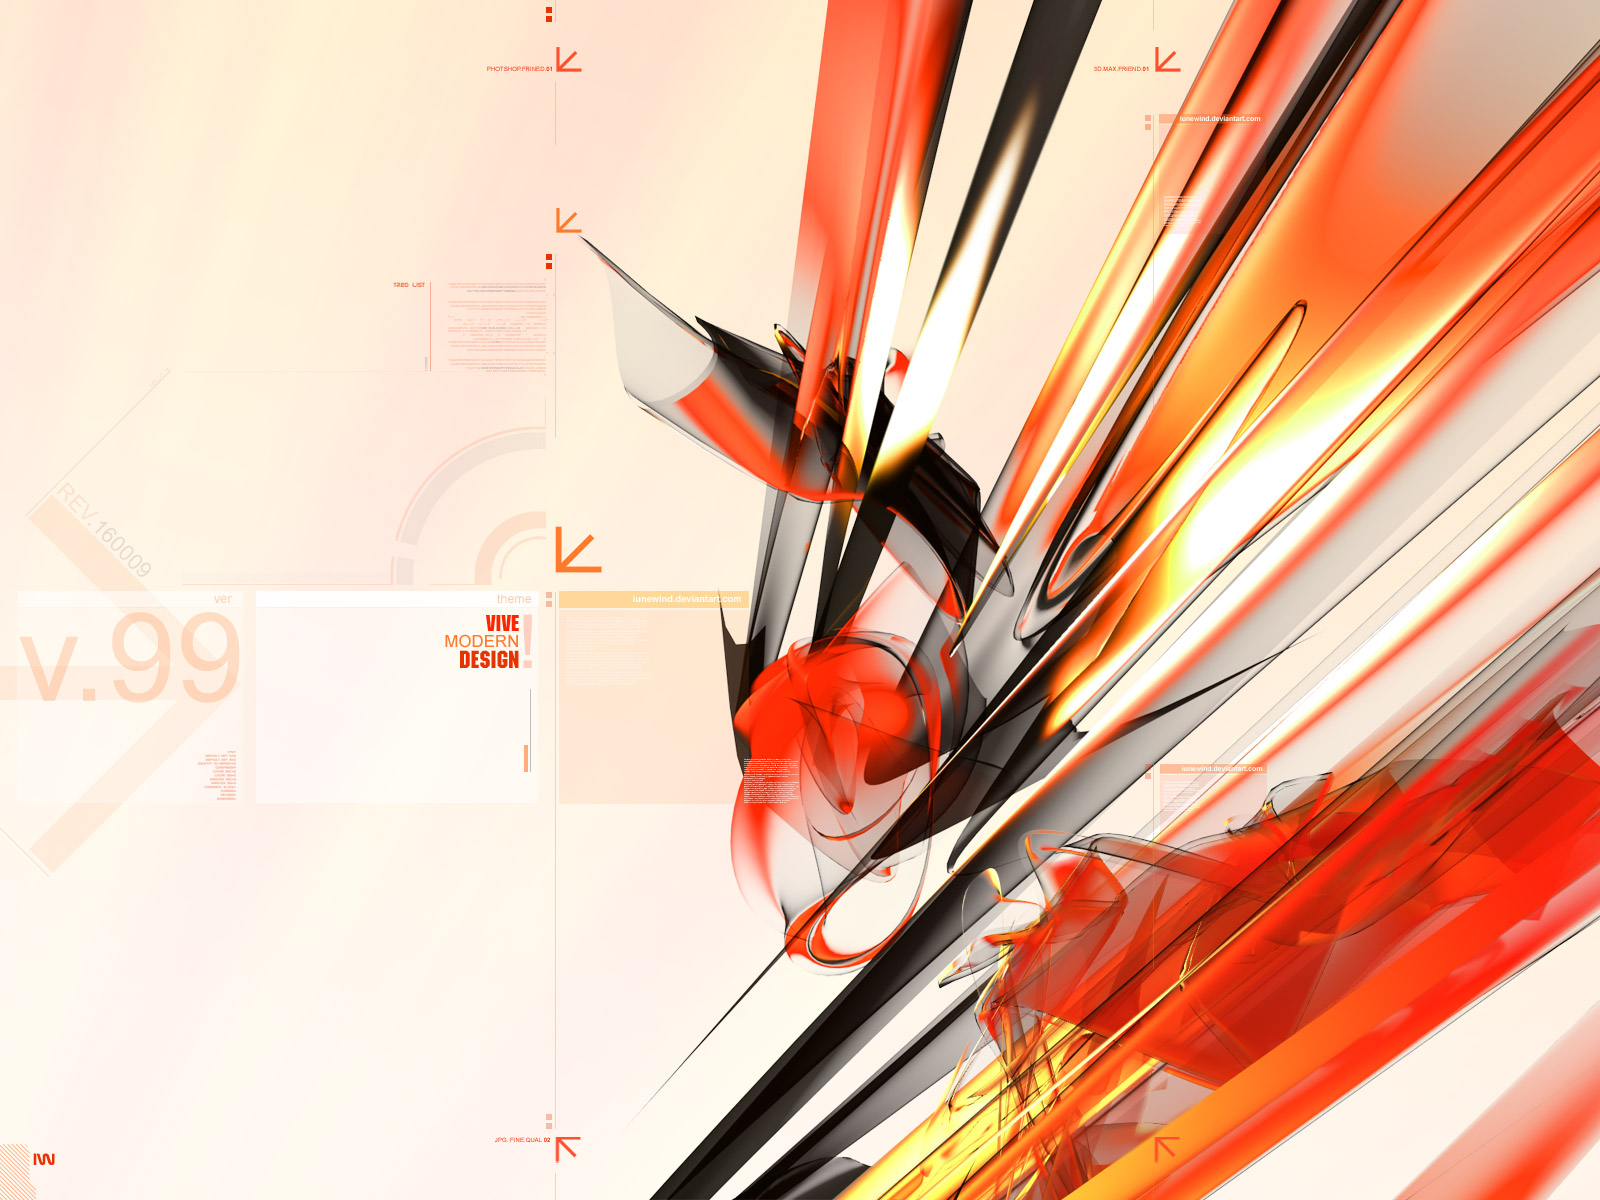 Best Graphic Design Wallpapers Cool Graphic Designs Invoice 1600x1200